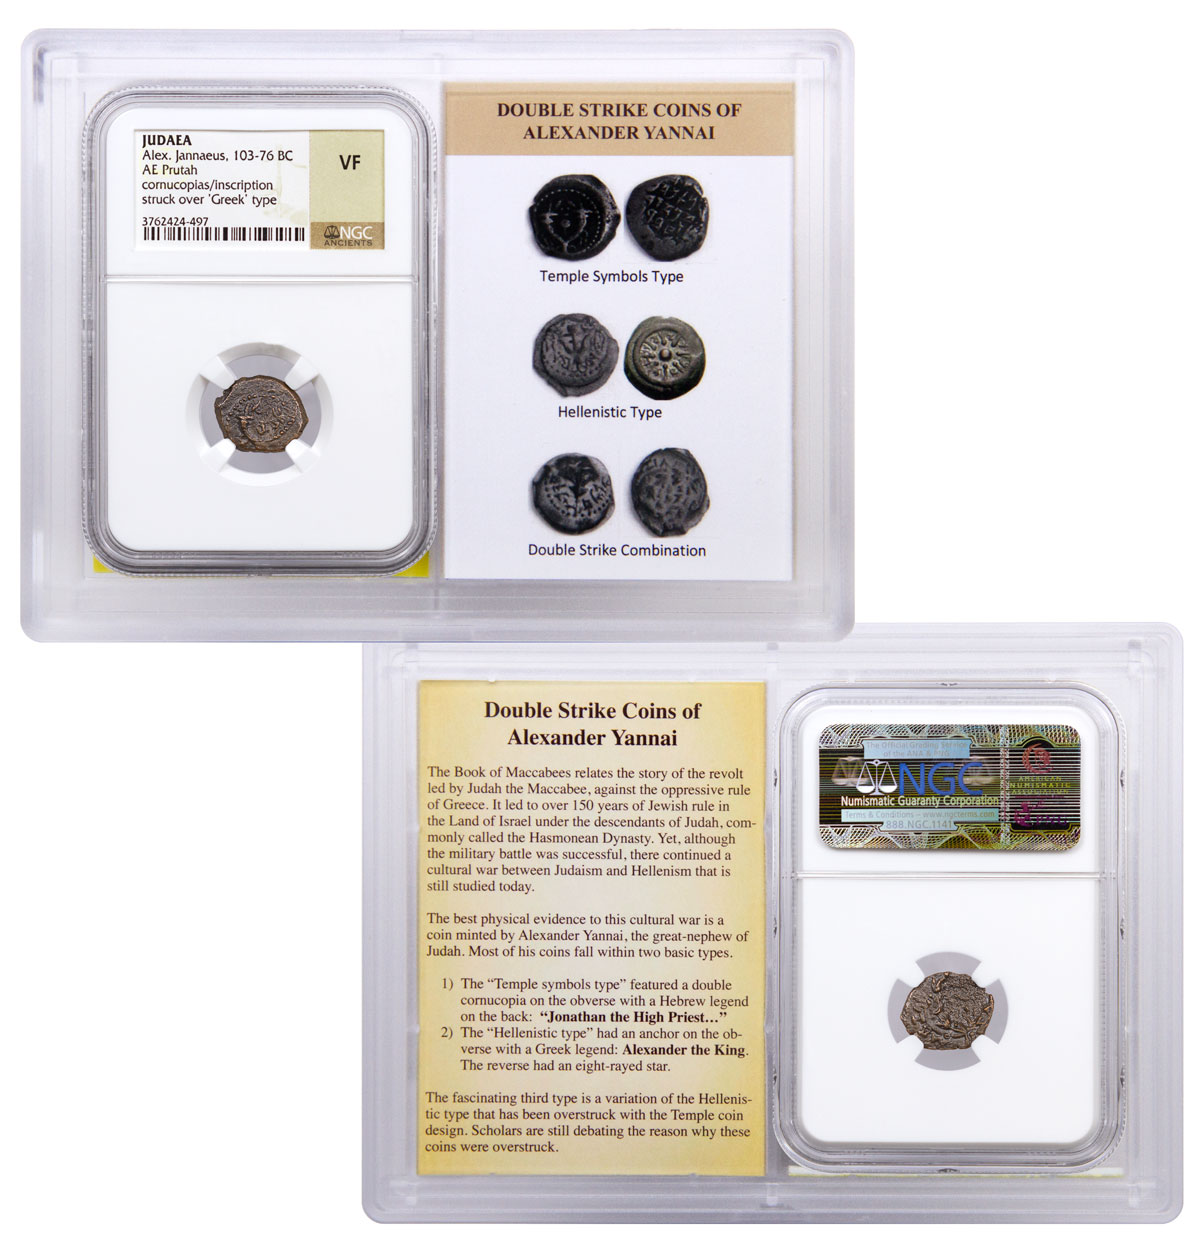 "Judaea, ""Widow's Mite"" Bronze Prutah (Alex. Jannaeus, 103-76 BC) - Double Struck - obv. Cornucopias/rv. Inscription NGC VF (Story Vault)"